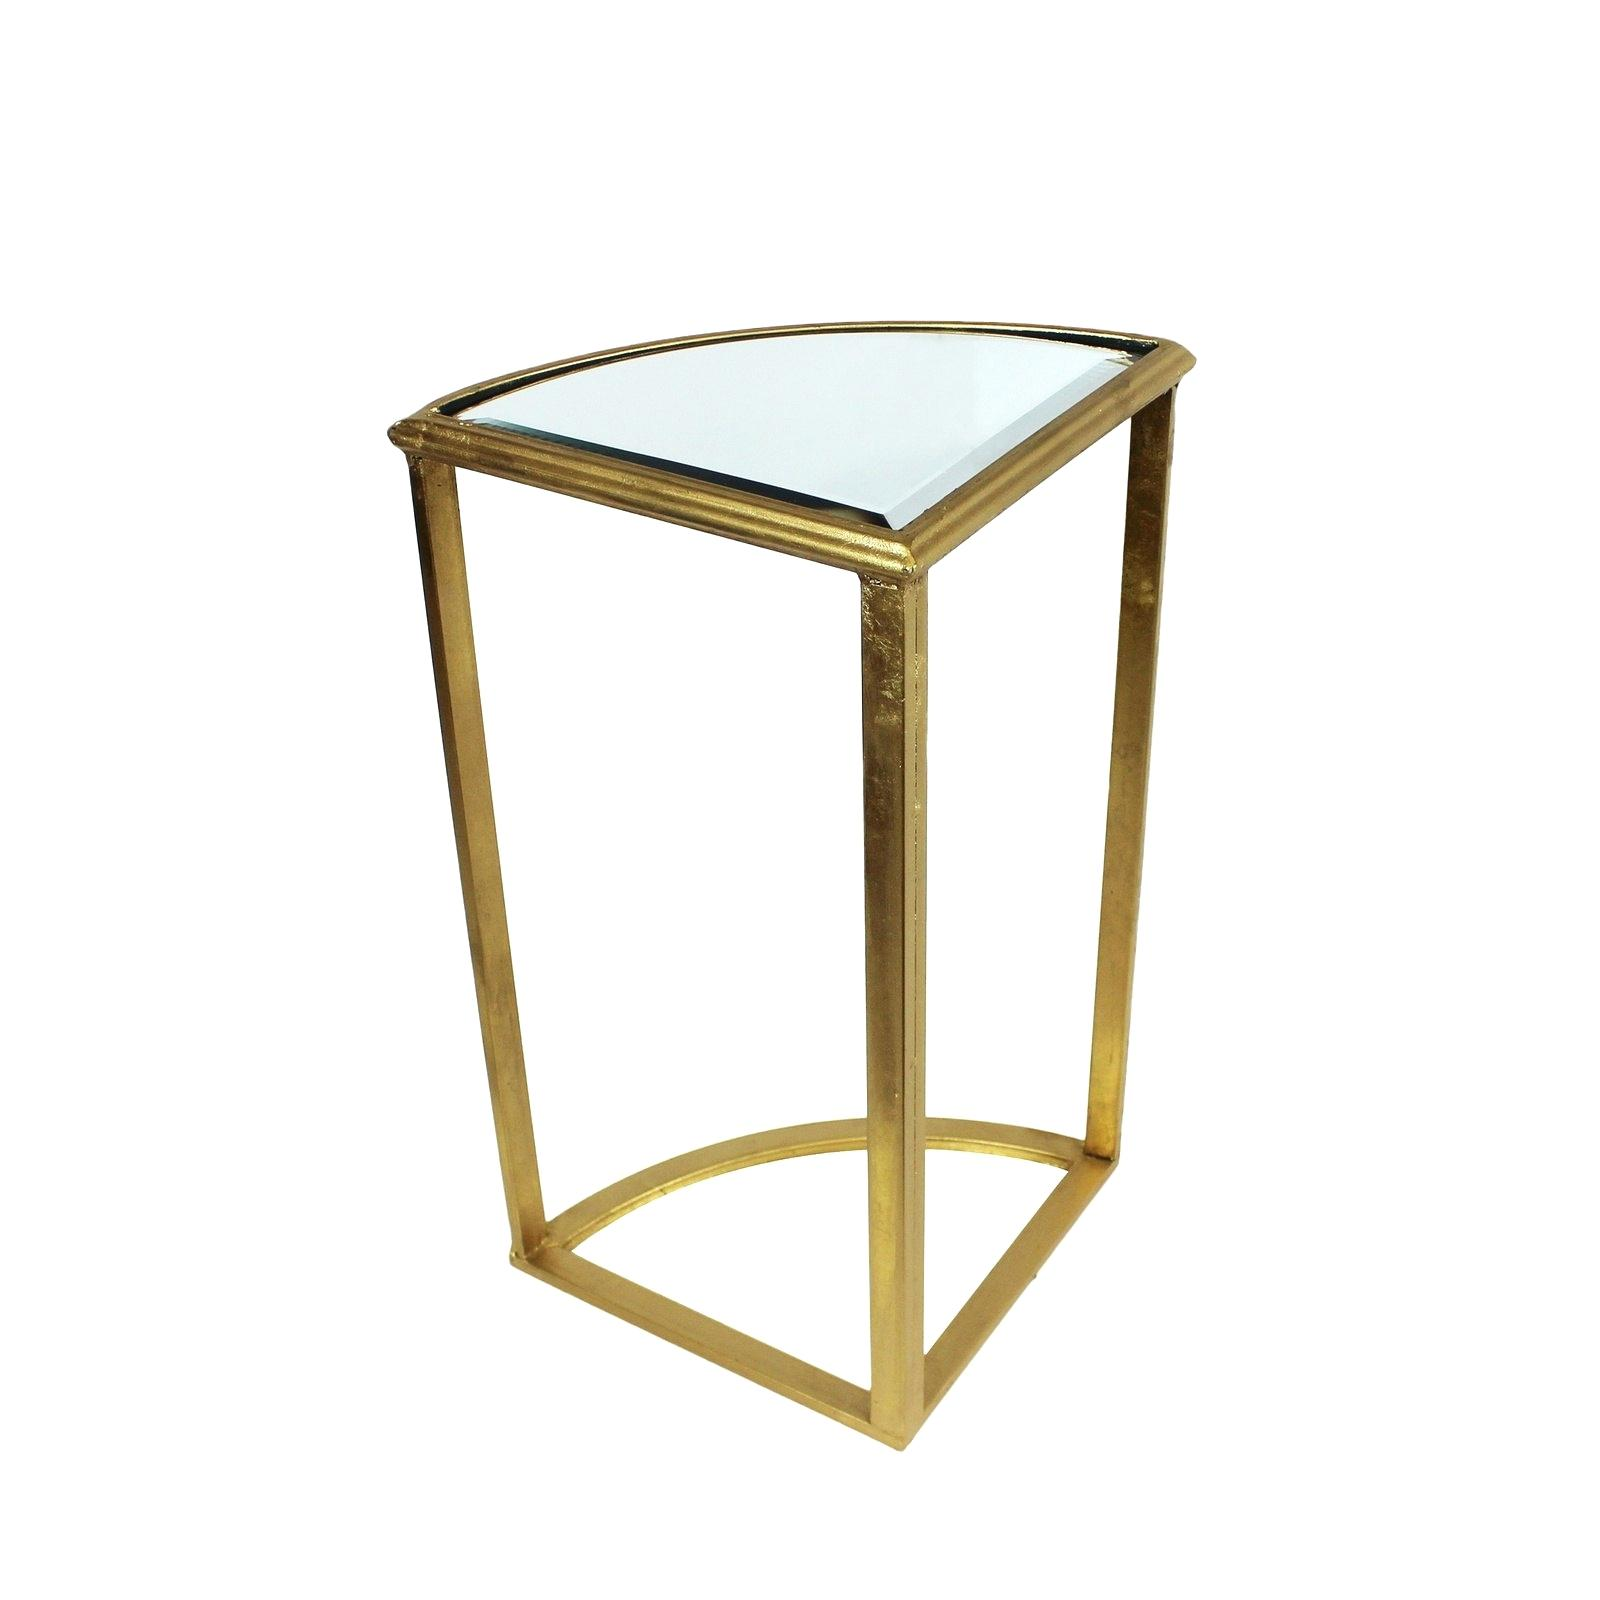 gold accent table metal glass set free urban designs round mirror mirrored dining room wall decor ideas solid cherry coffee kitchen sets cocktail linens childrens outdoor